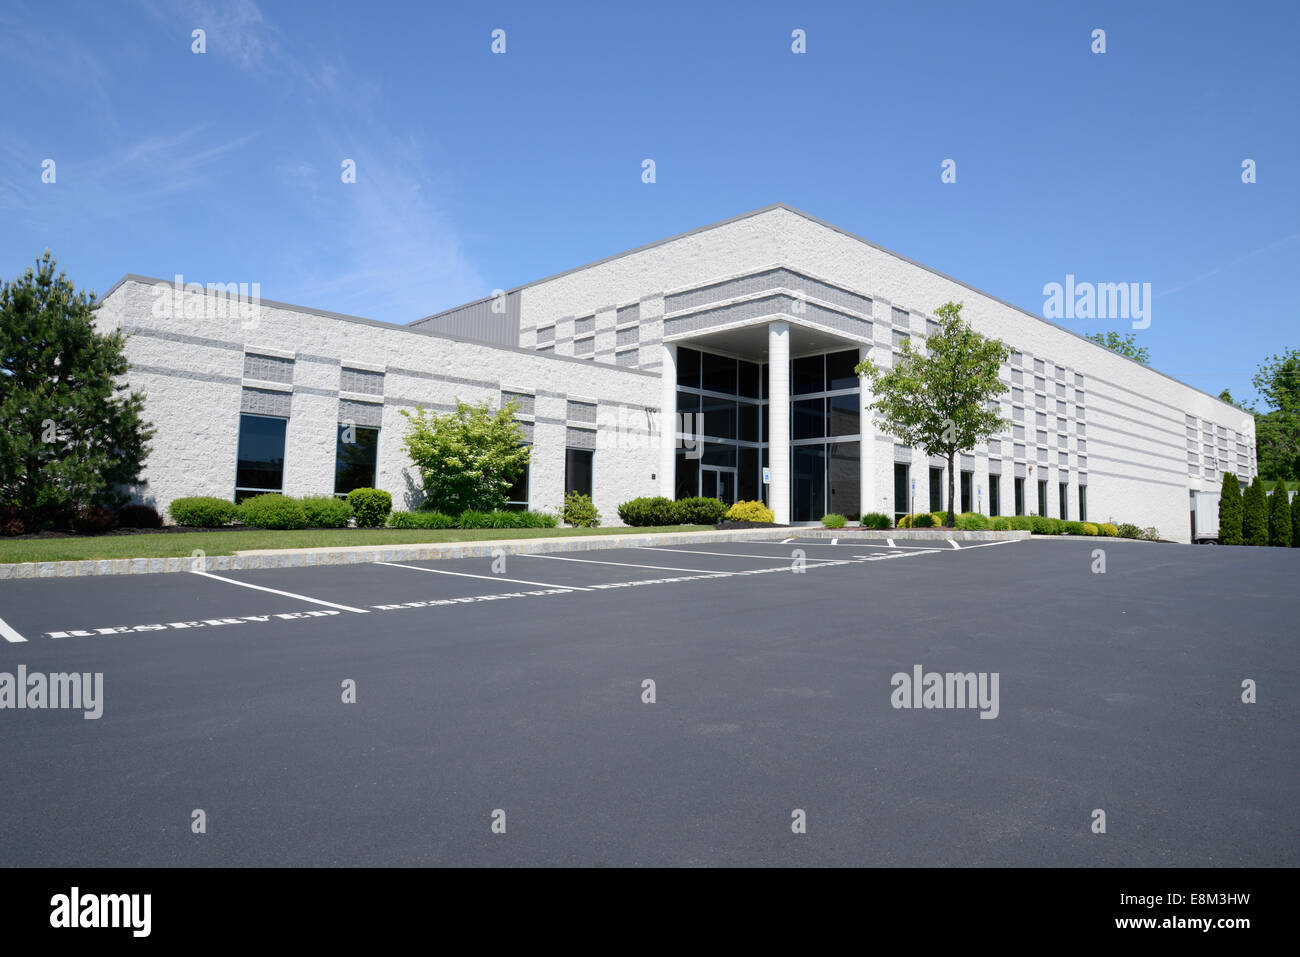 exterior of a large corporation building by an asphalt parking area - Stock Image